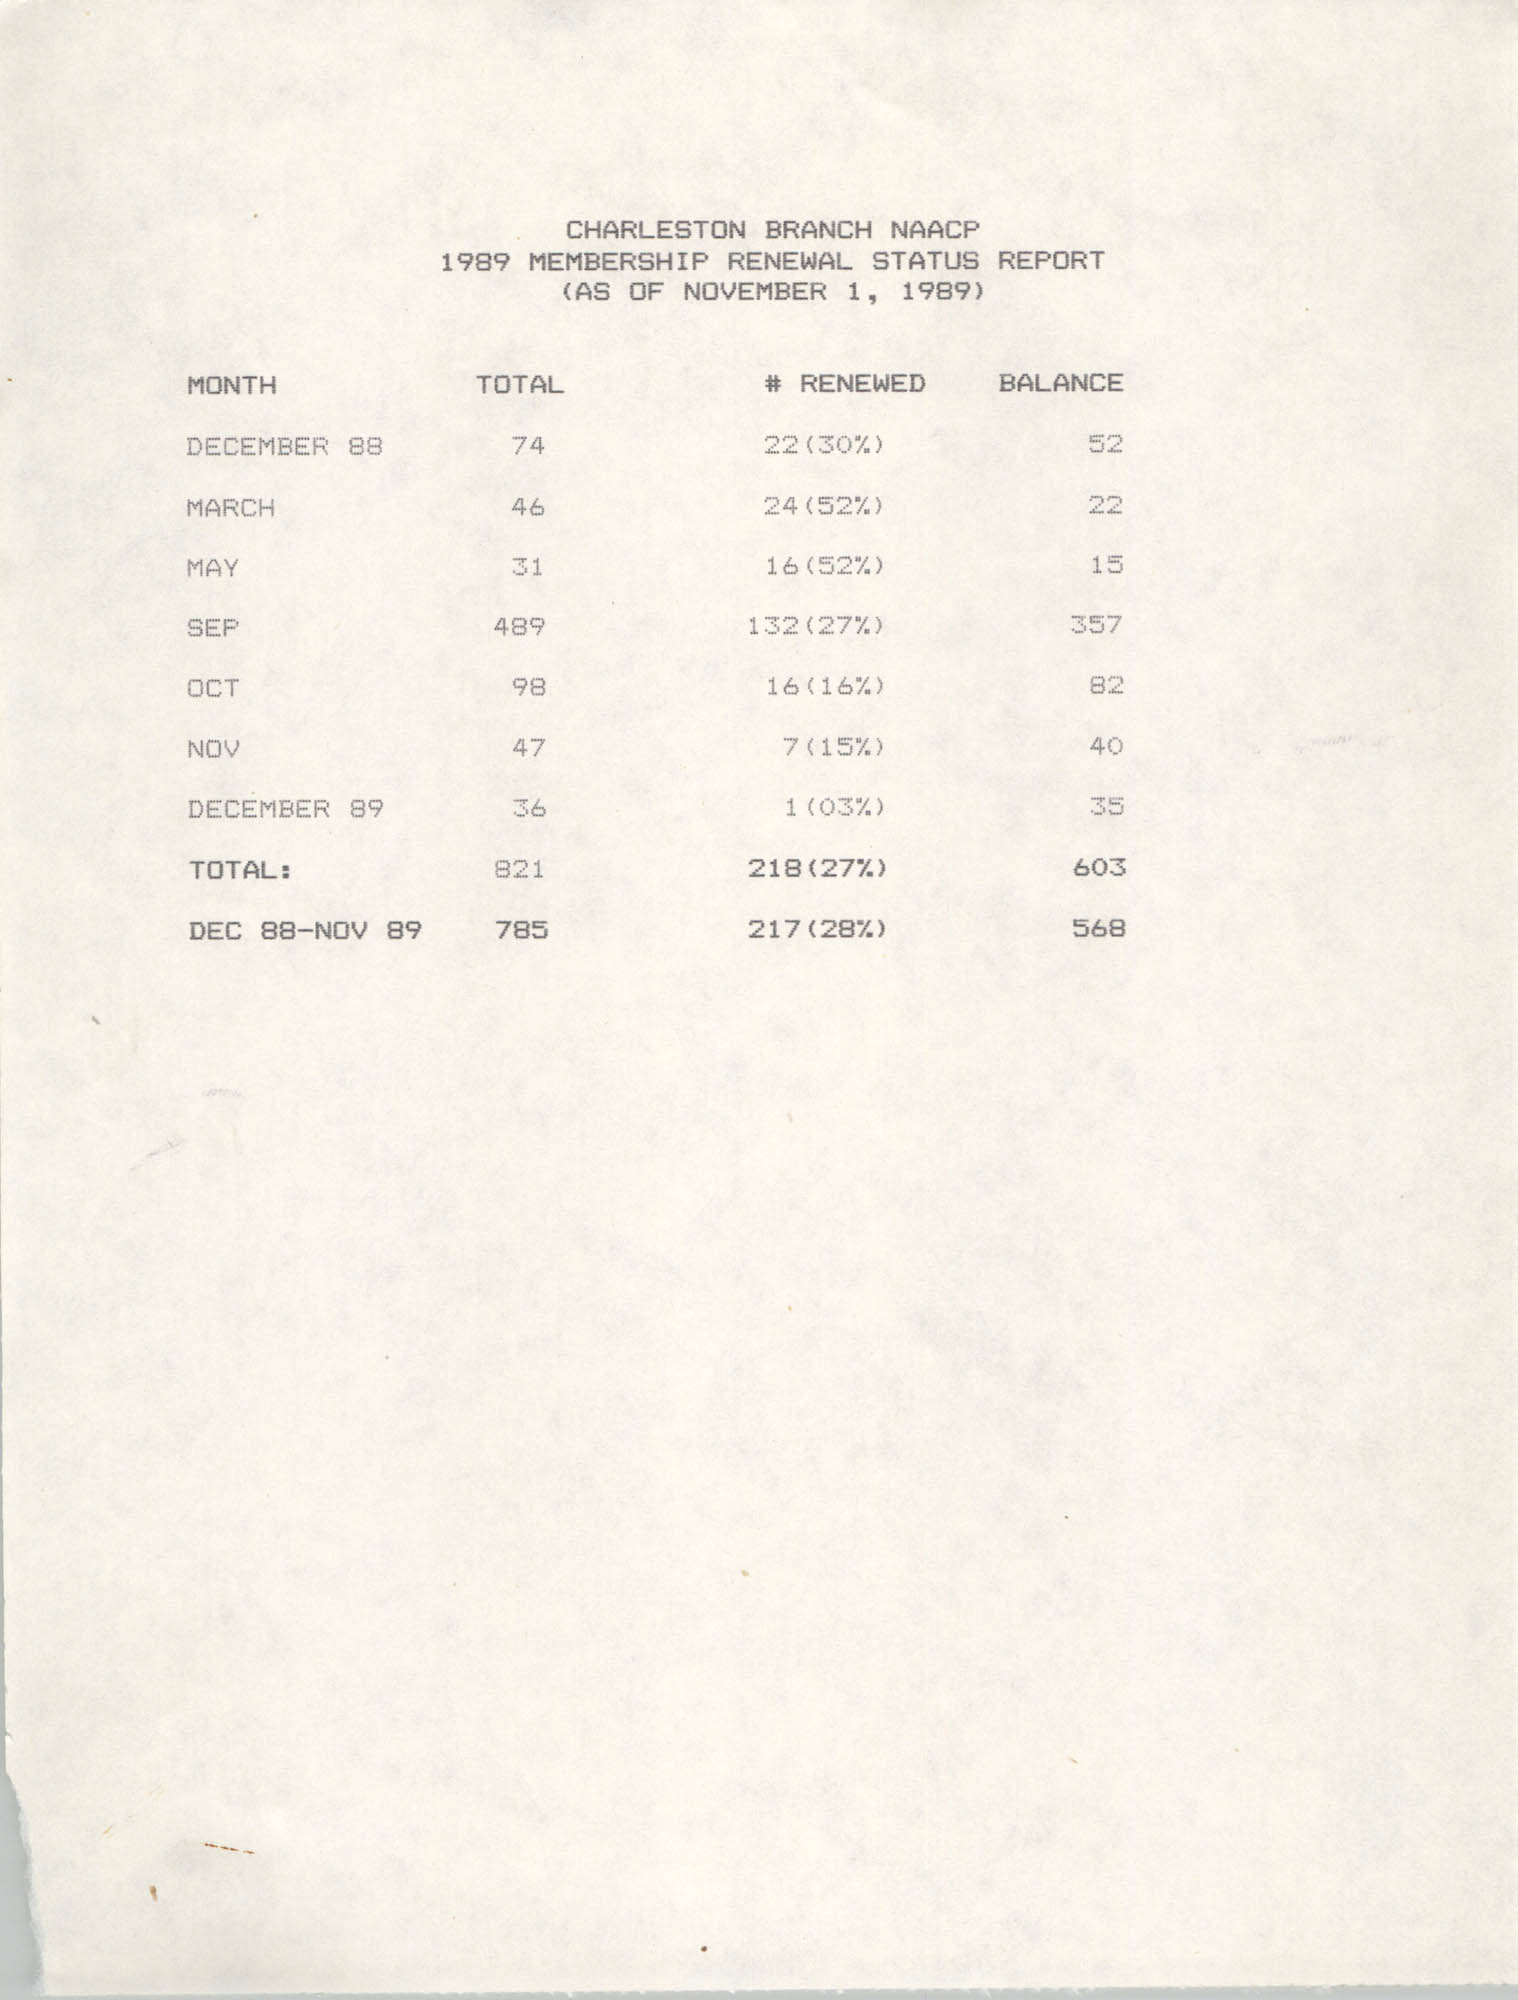 Membership Renewal Status Report, National Association for the Advancement of Colored People, November 1, 1989